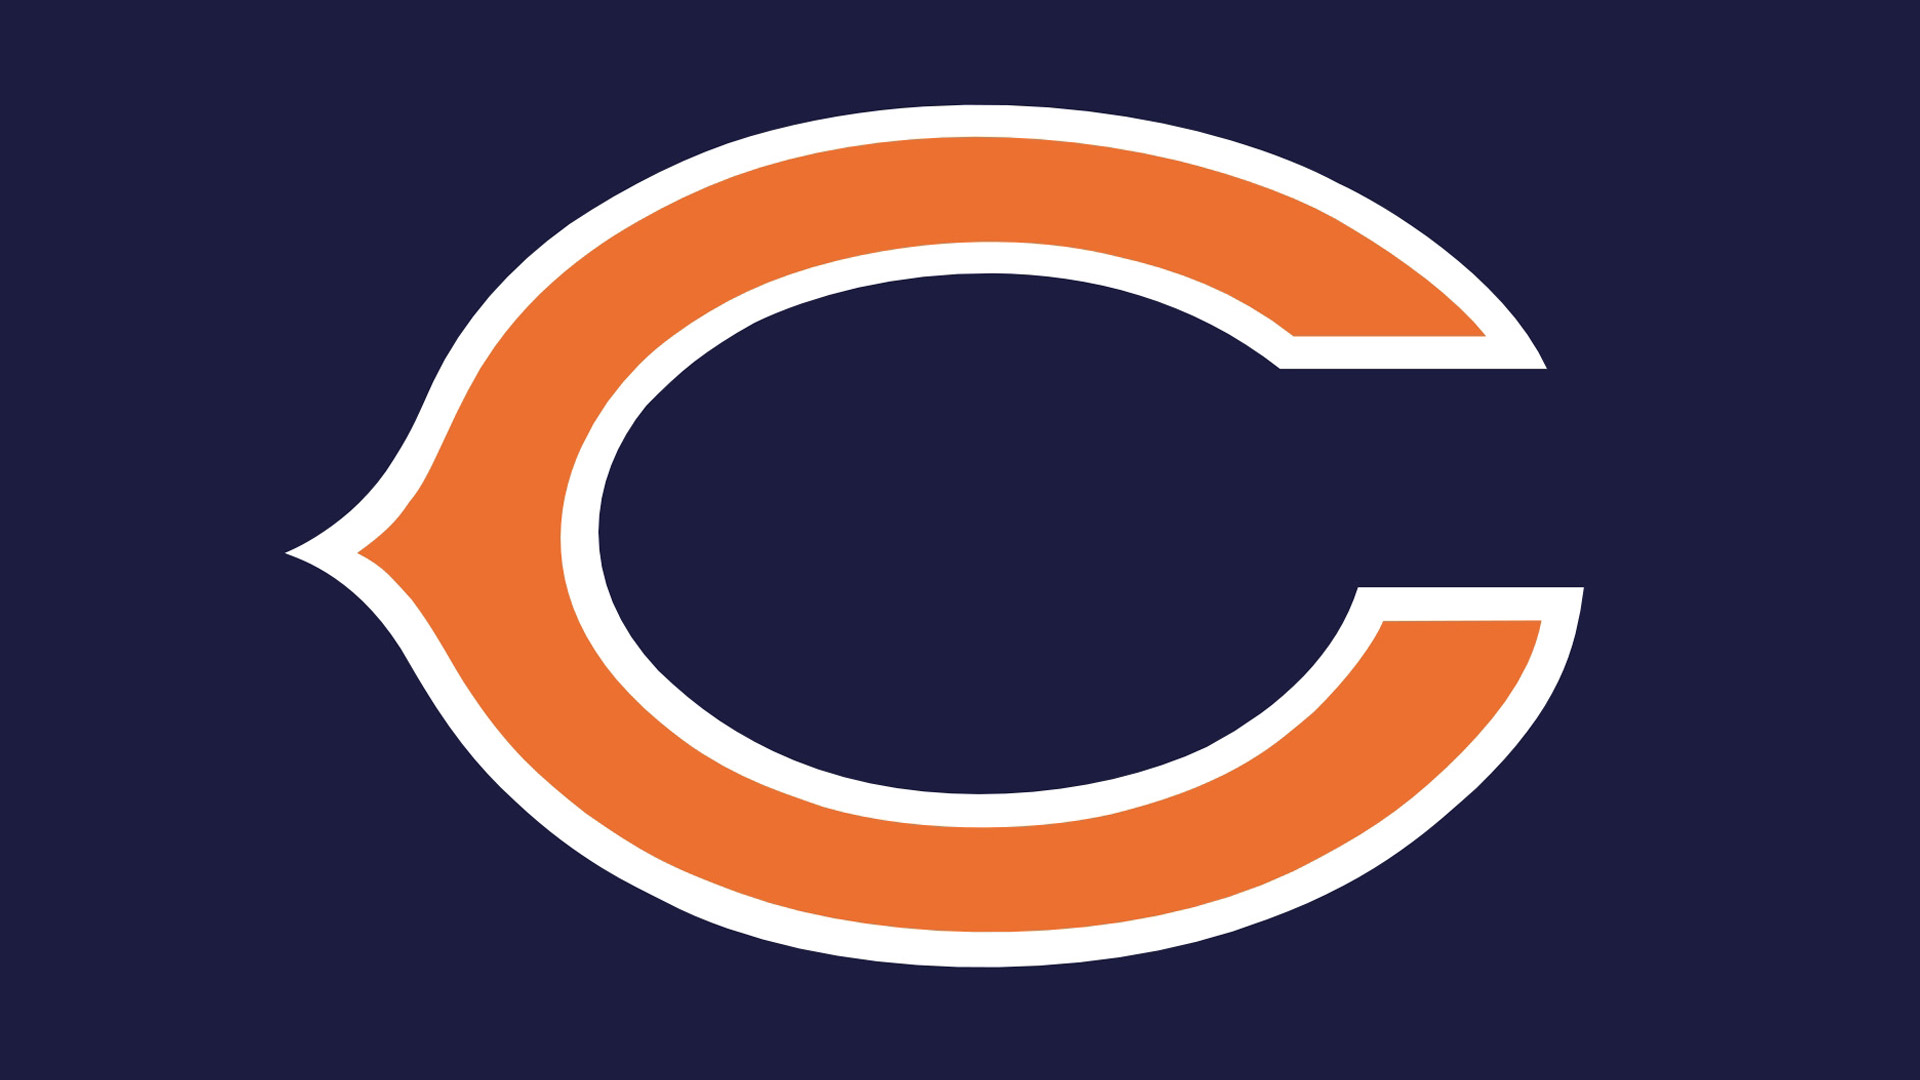 Chicago Bears wallpaper   314777 1920x1080